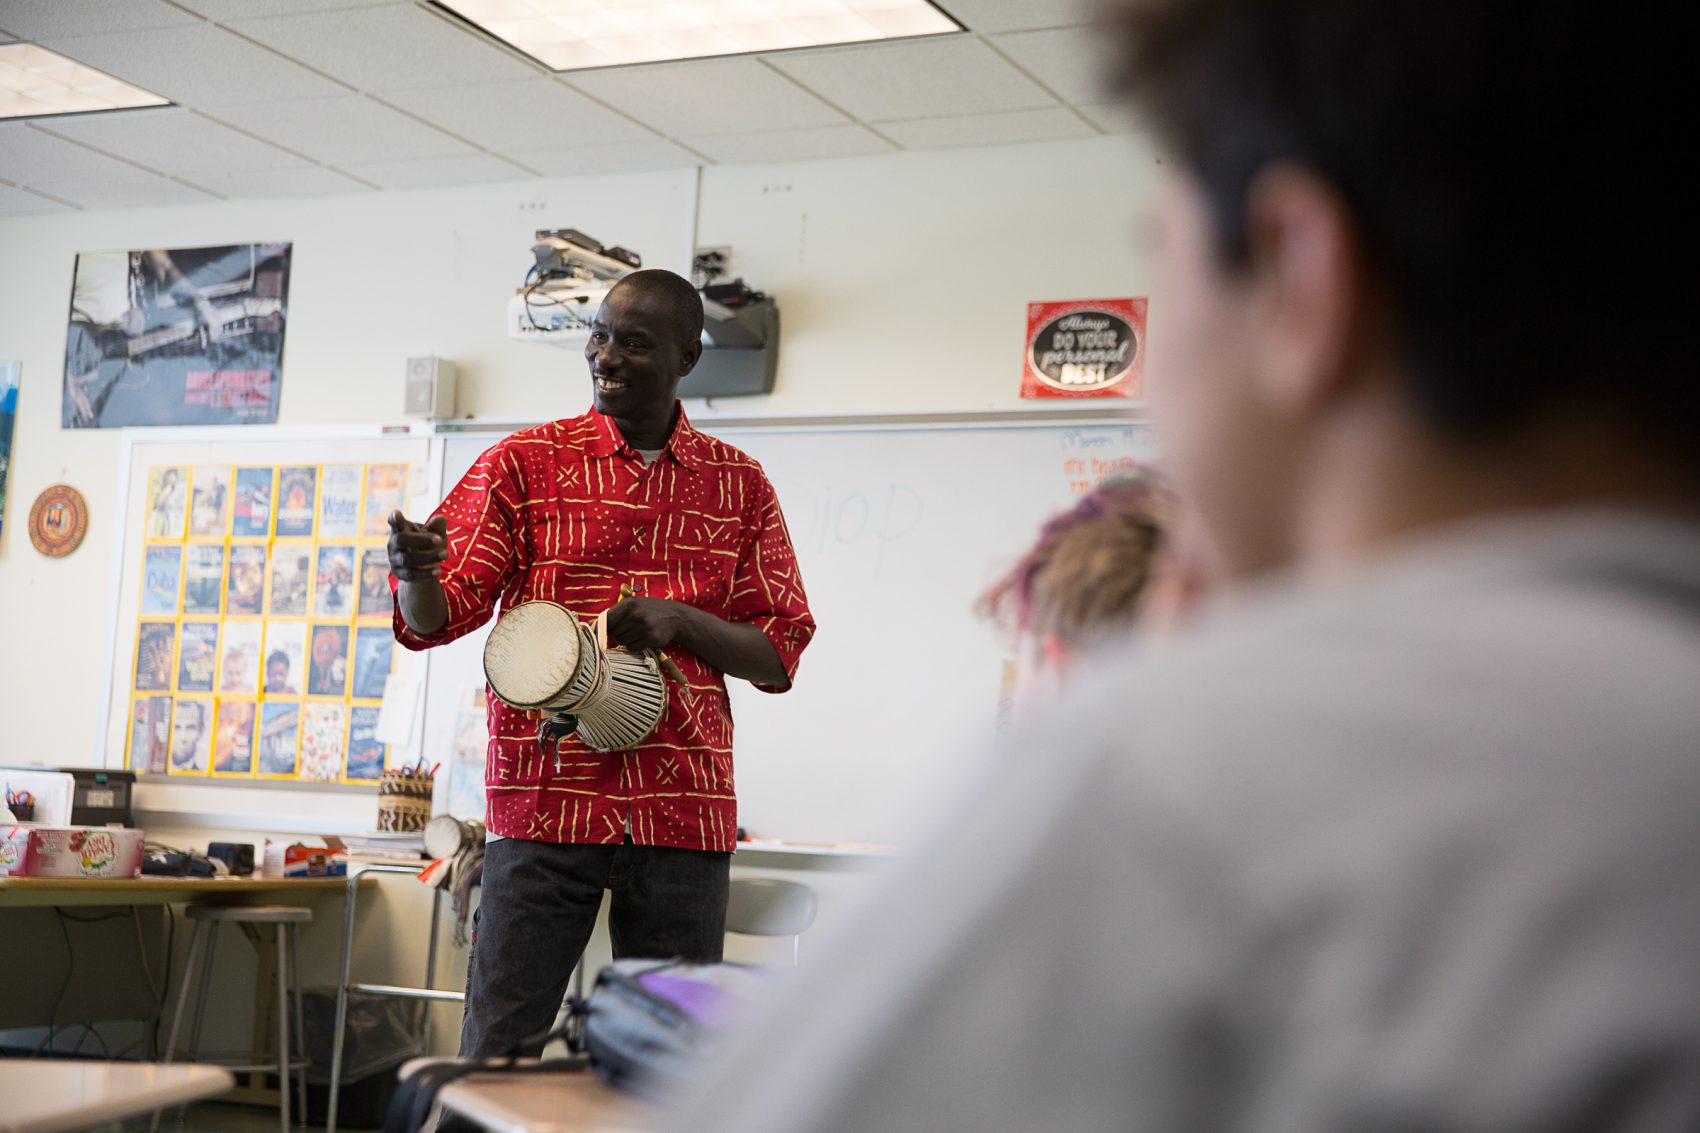 Holding one of his talking drums, Senegalese drum soloist Massamba Diop leads a classroom workshop at Roger Ludlowe Middle School in Fairfield, Connecticut on March 23, 2018. (Ryan Caron King/Connecticut Public Radio)